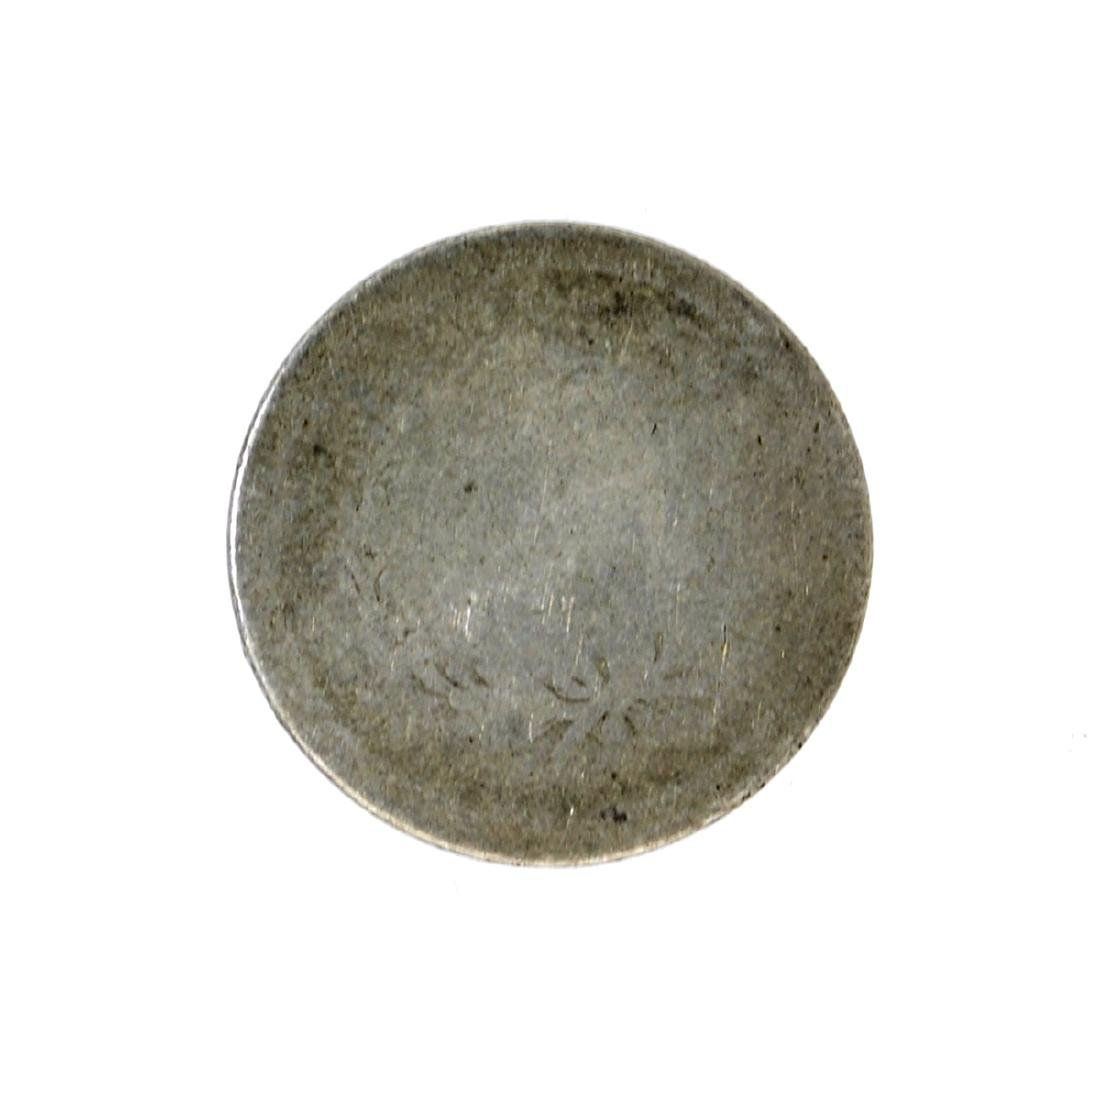 1842 Liberty Seated Dime Coin - 2